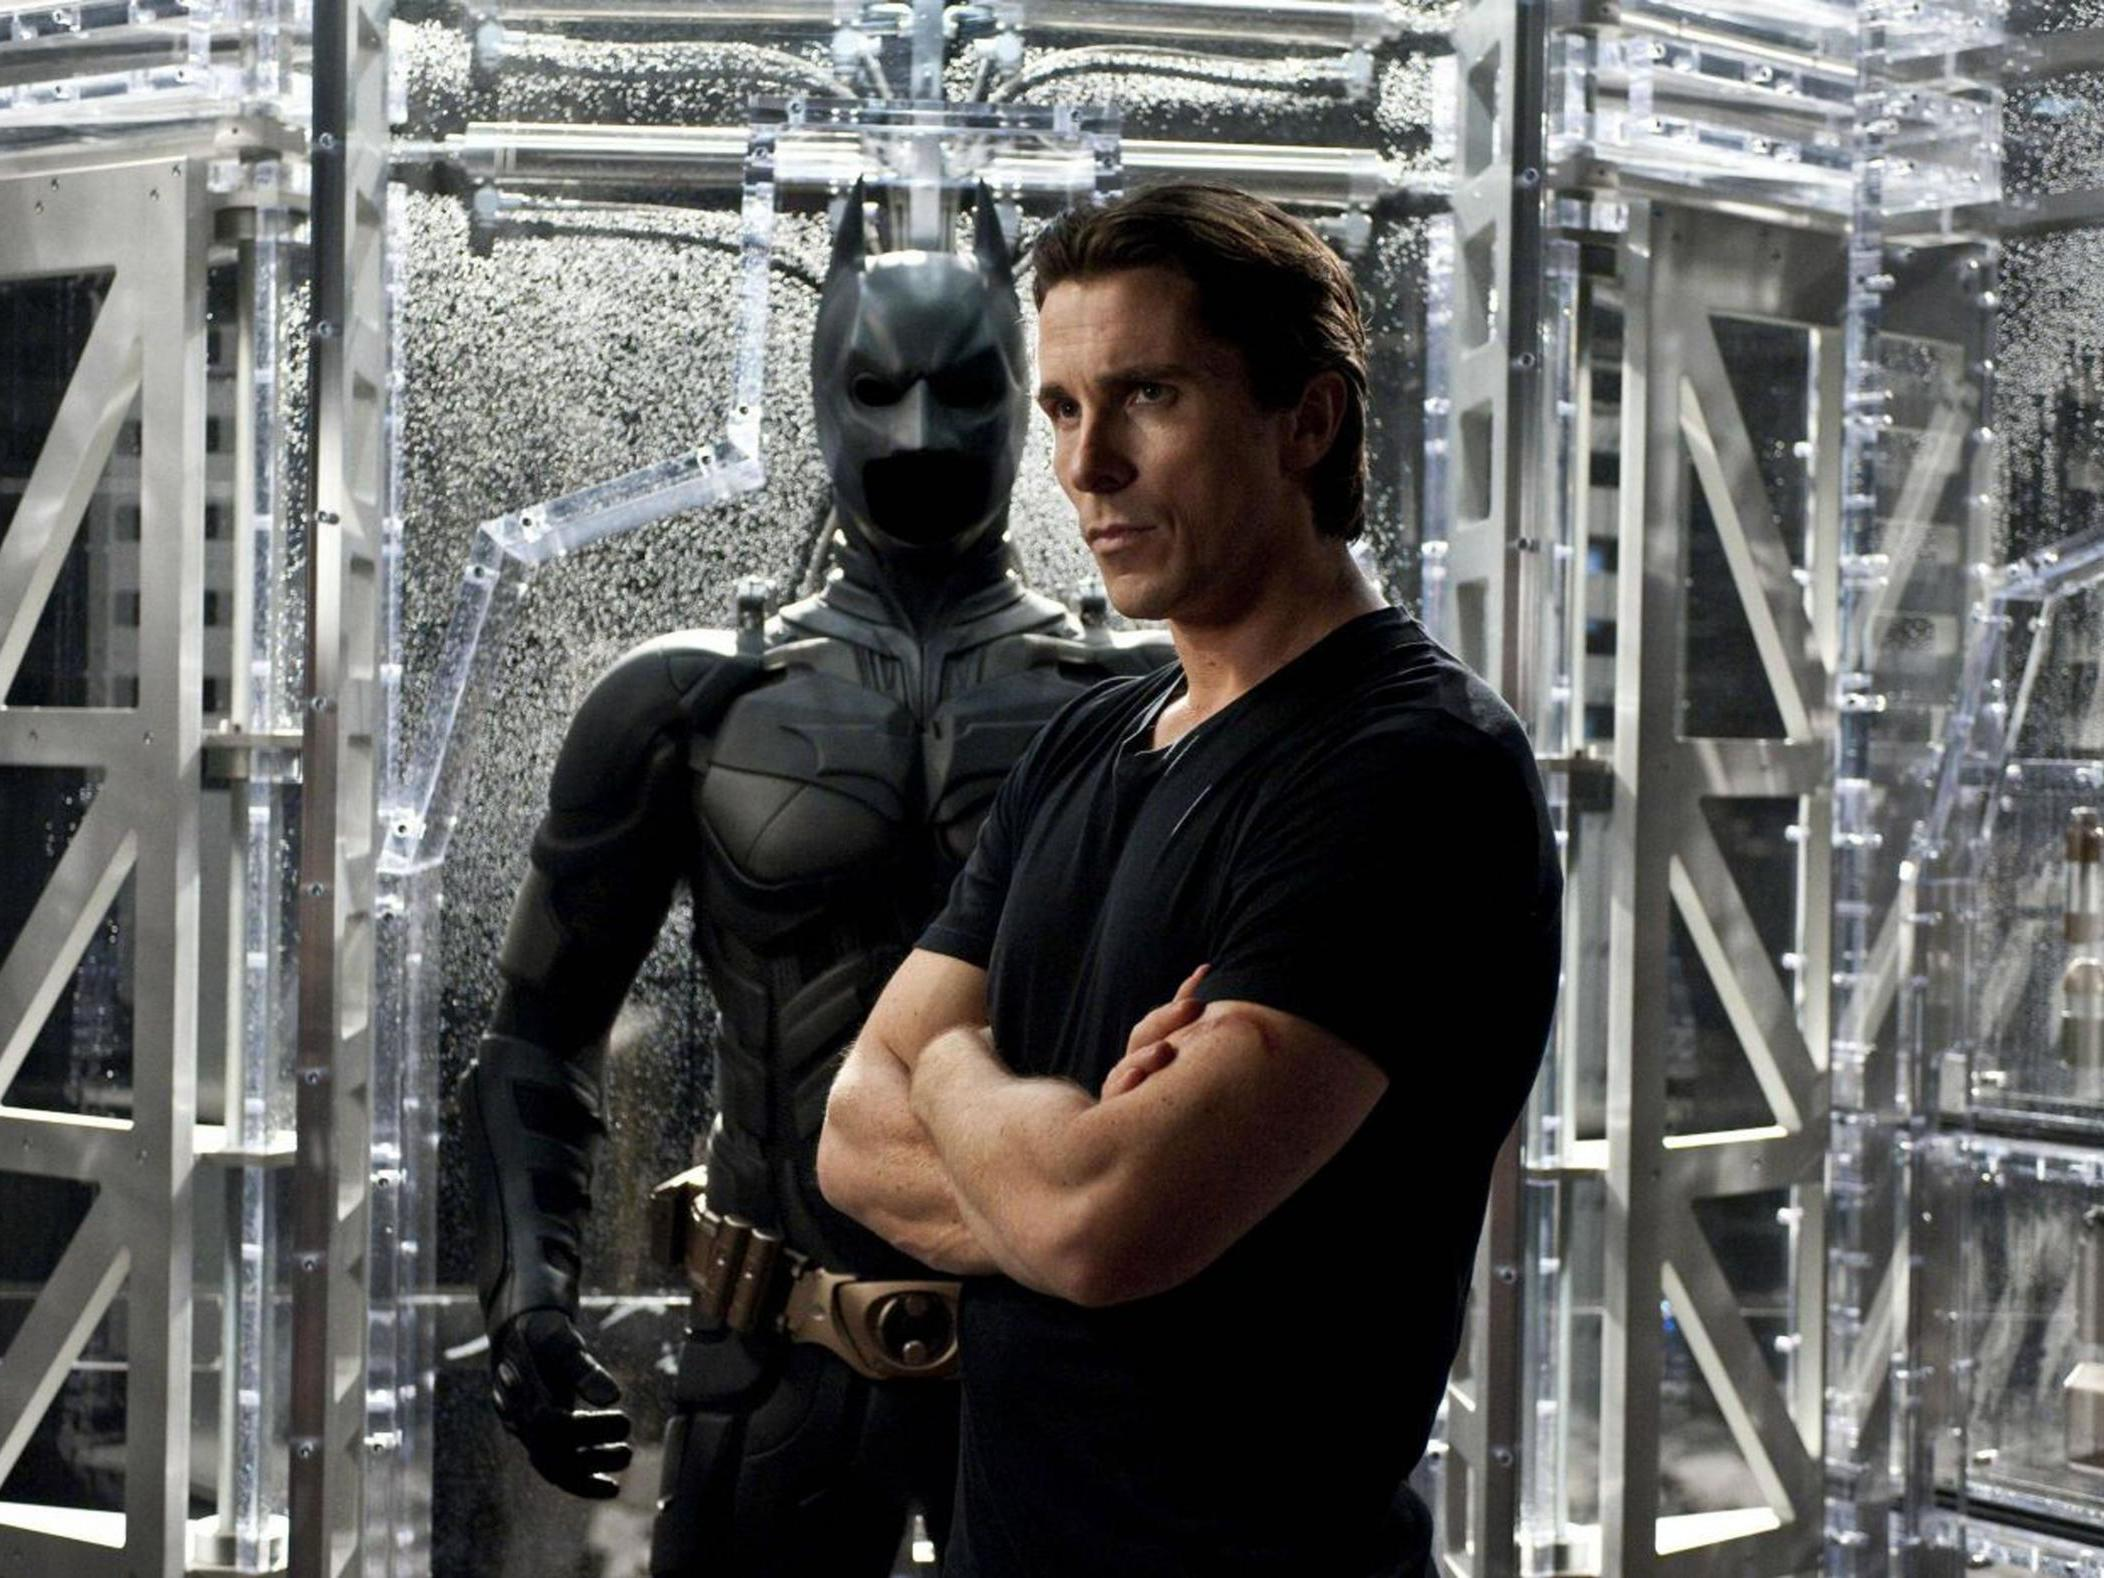 Batman: Christian Bale shares advice for Robert Pattinson amid criticism over casting